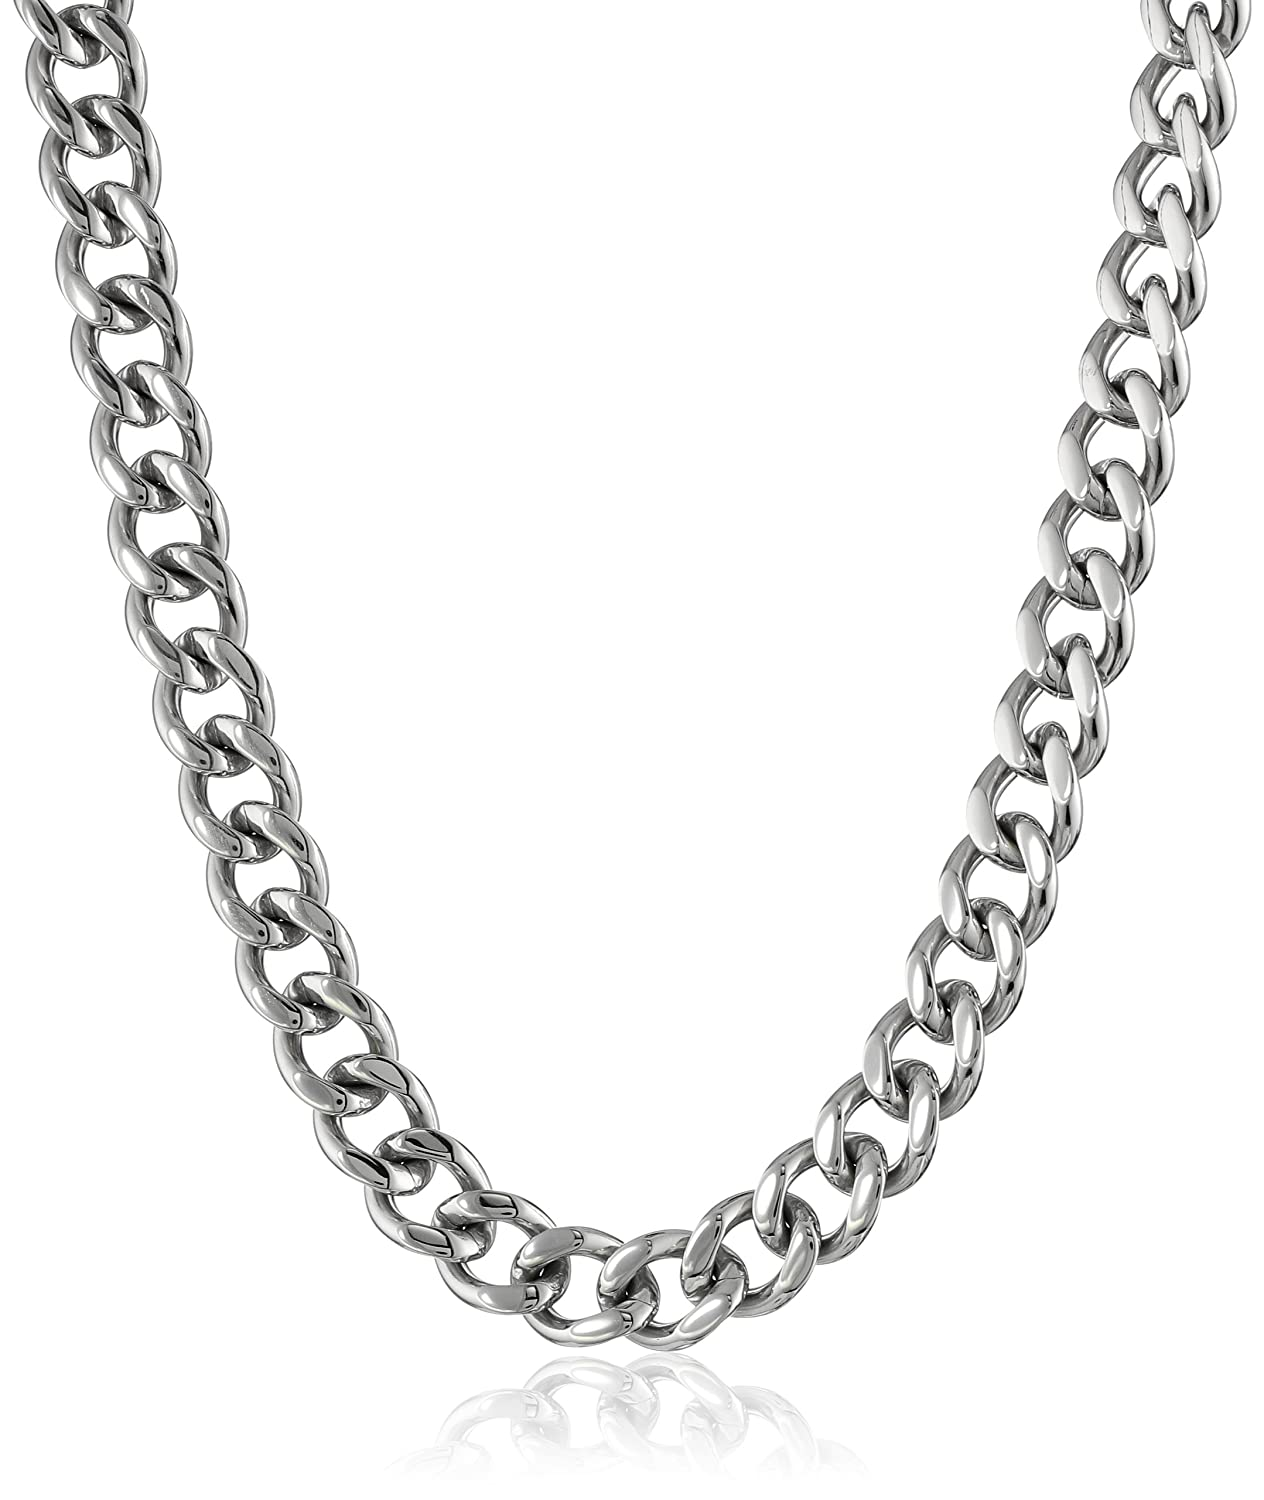 necklace black amazon inch jewelry mens dp steel inches konov stainless com chain chains